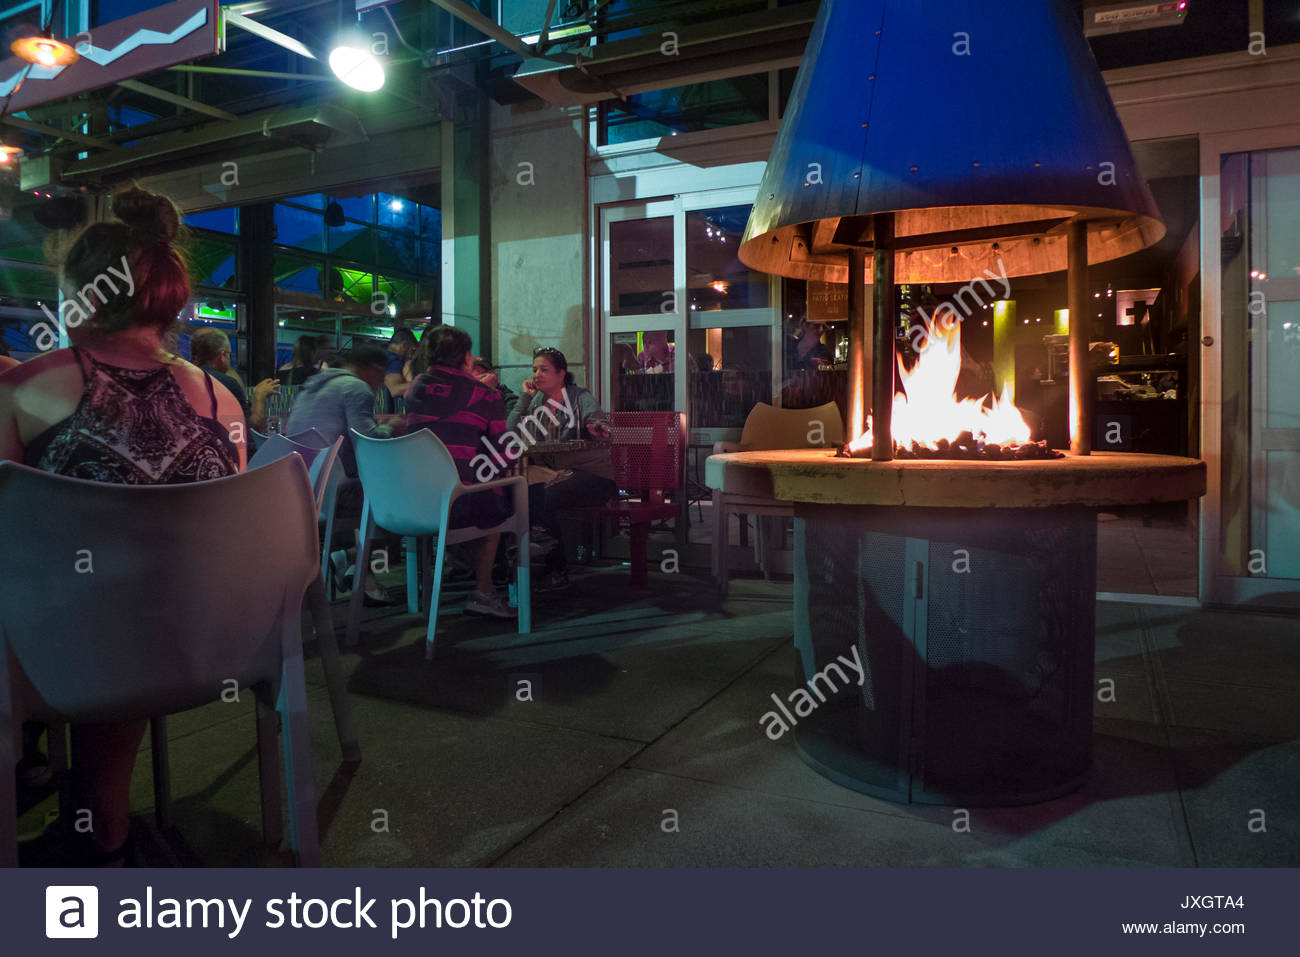 Patrons Dining Outside Next To A Fire At Cactus Alki Beach Stock